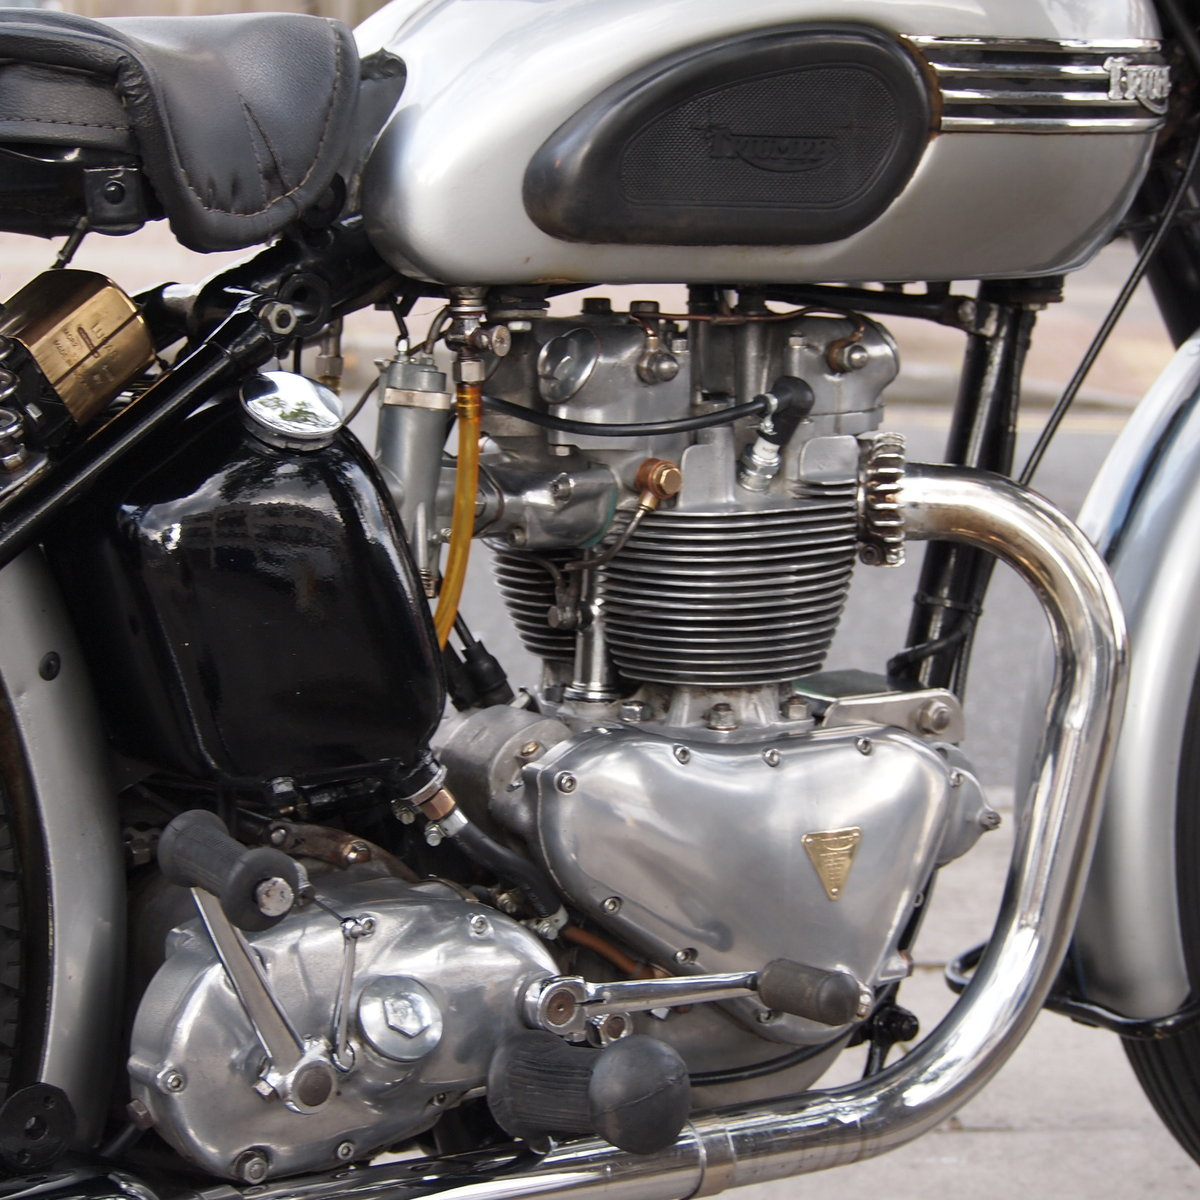 1952 T100 Tiger 499cc Sprung Hub, Lovely Bike You Must See. For Sale (picture 3 of 6)